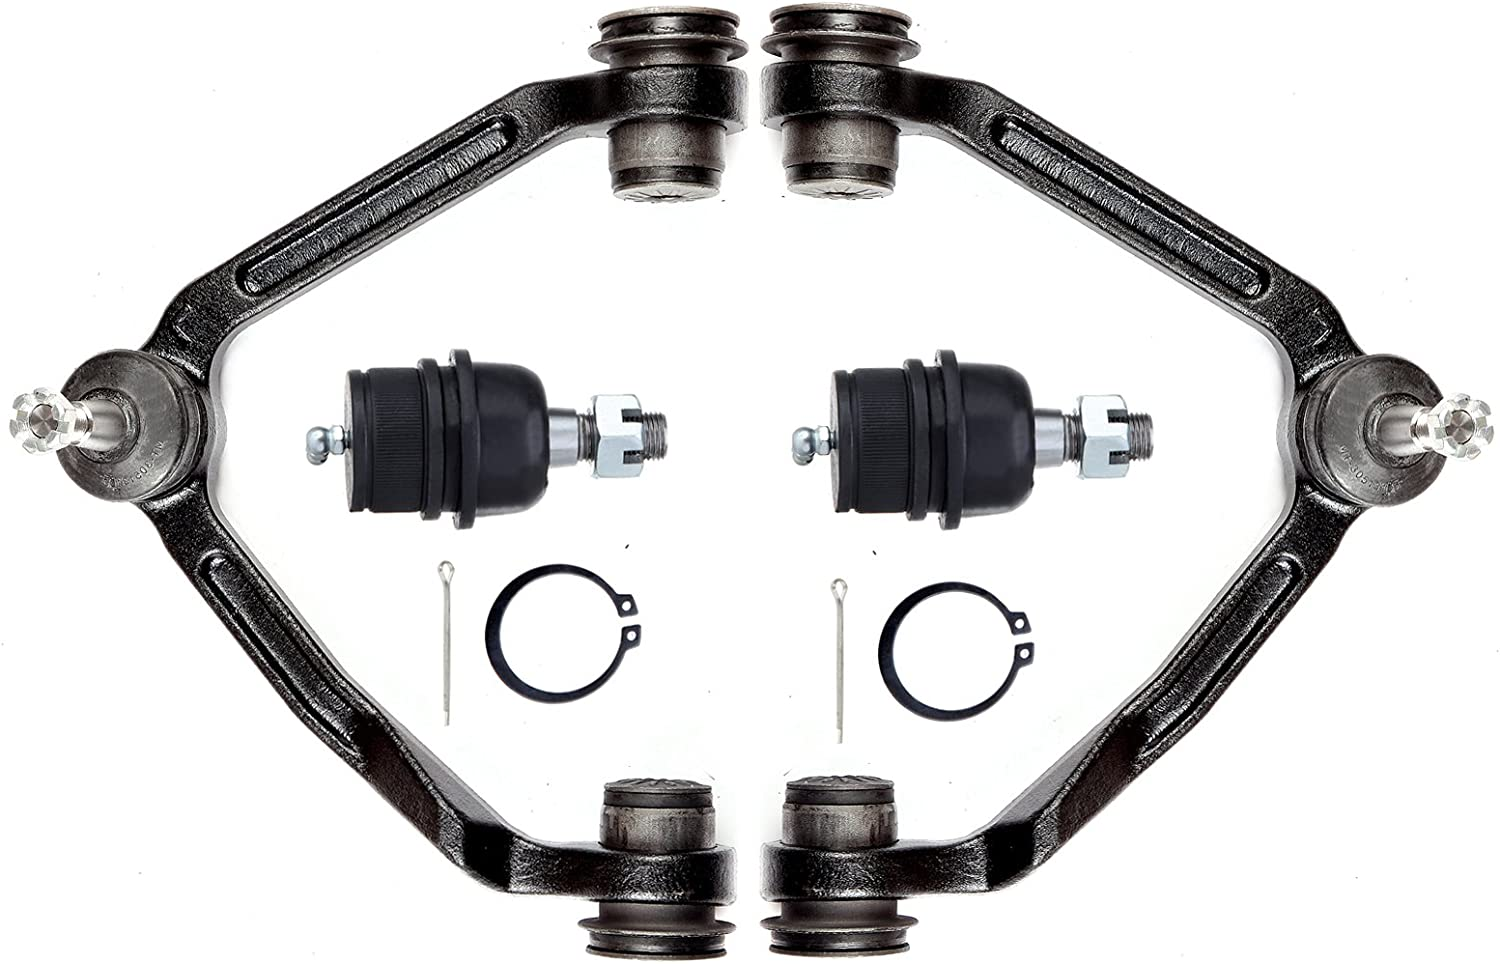 ROADFAR Front Lower Ball Joint Upper Control Arm And Ball Joint Compatible fit 97-02 for Ford Expedition 04 for Ford F-150 Heritage 97-99 for Ford F-250 98-02 for Lincoln Navigator Suspension Set of 4